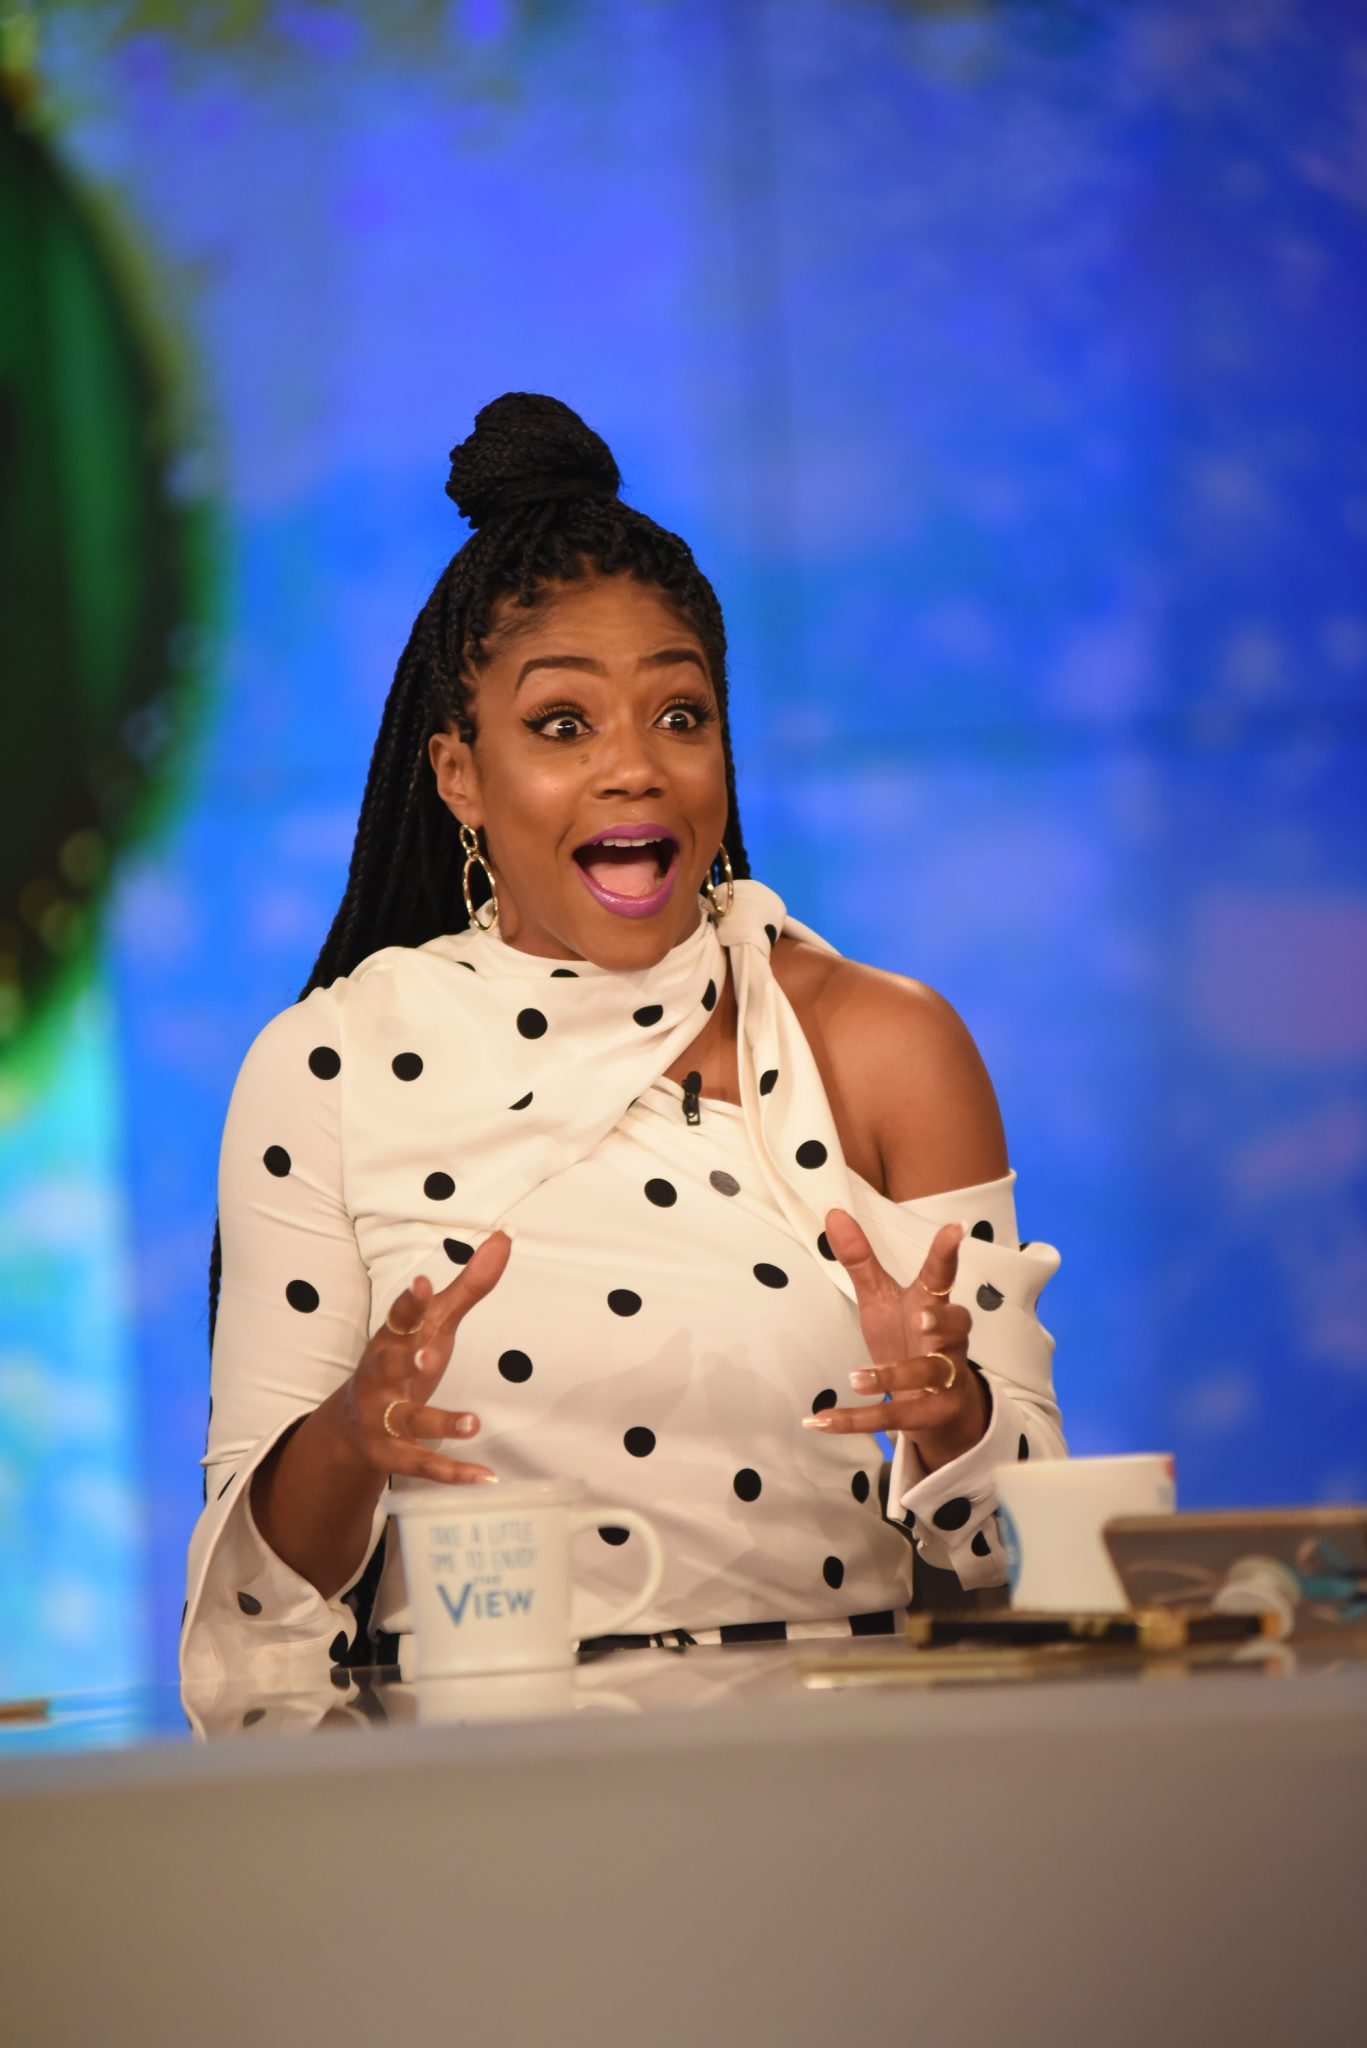 In Case You Missed It: Tiffany Haddish On The View